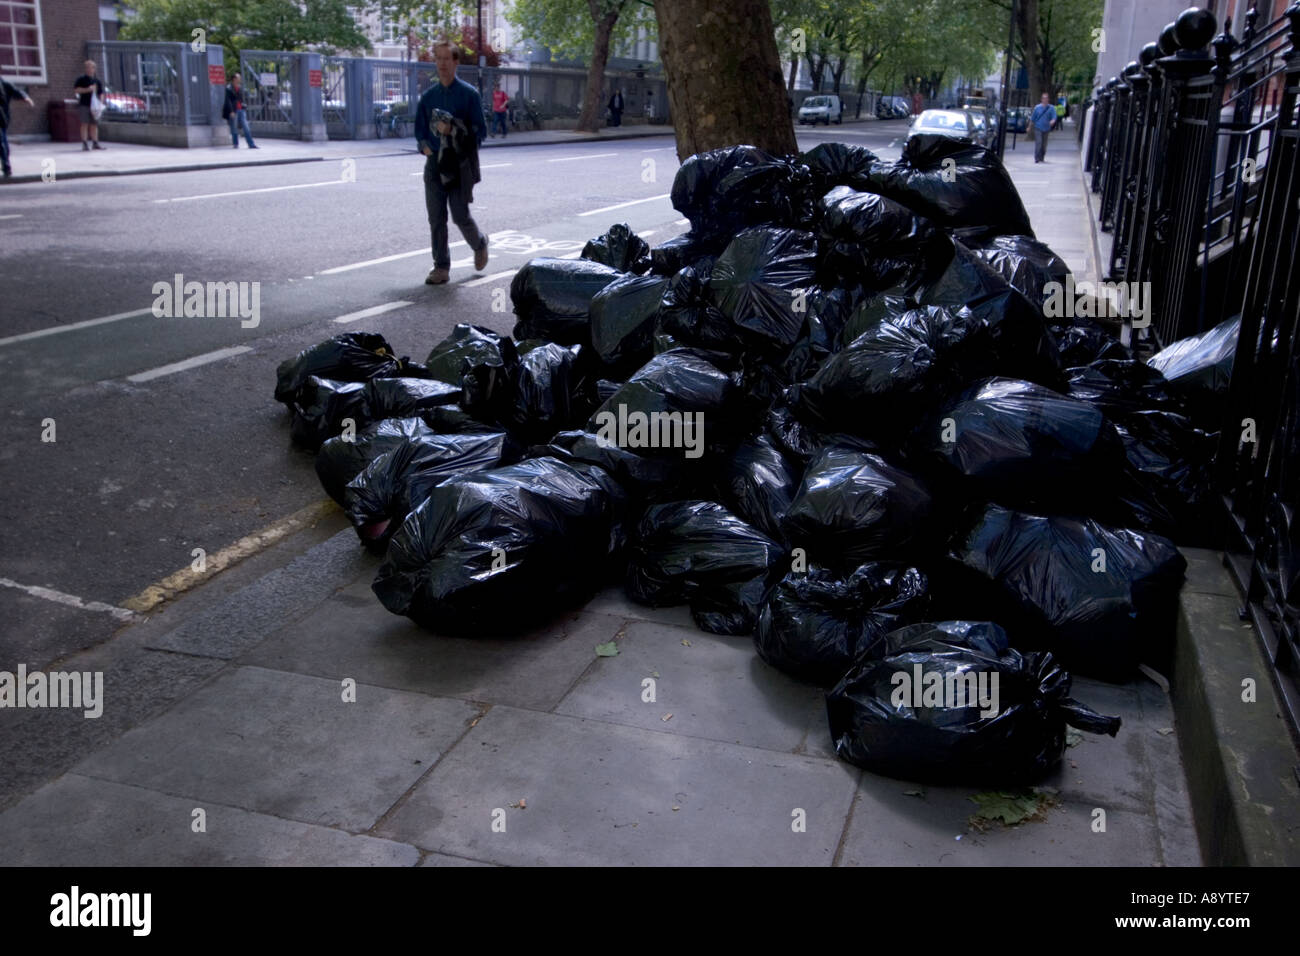 Rubbish bags full of household waste and litter blocking pavement in central London street - Stock Image